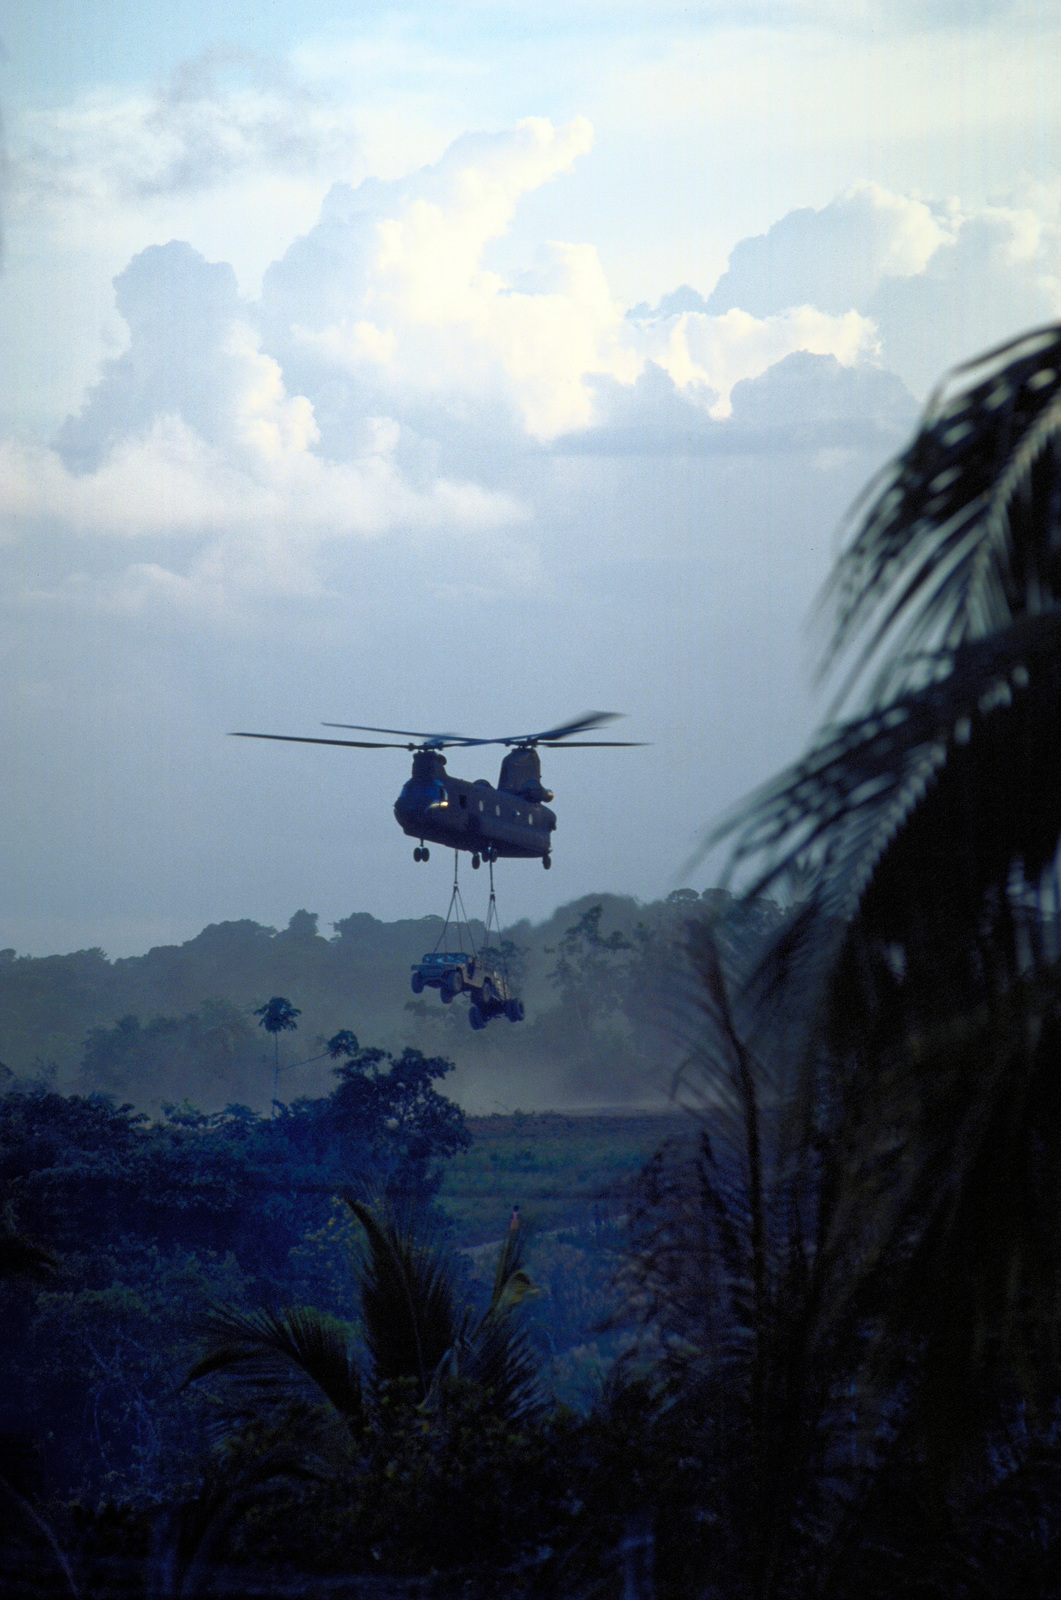 A CH-47 Chinook helicopter leaves the Kumaka airfield carrying a sling loaded High-Mobility Multipurpose Wheeled Vehicle (HMMWV). The CH-47 from the Army National Guard's Det 1, 106th Aviation Squadron, Davenport, Iowa, will redeploy the equipment from Kumaka back to Camp Stephenson, Timehri Guyana. The equipment was used to assist in renovating the existing regional hospital as part of this first combined humanitarian and civic assistance exercise conducted between the United States and Guyana. Military personnel from Air Force, Air Force Reserve & National Guard, Army, Army National Guard and Marine Corps participated in the exercise which included engineering and medical readiness ...